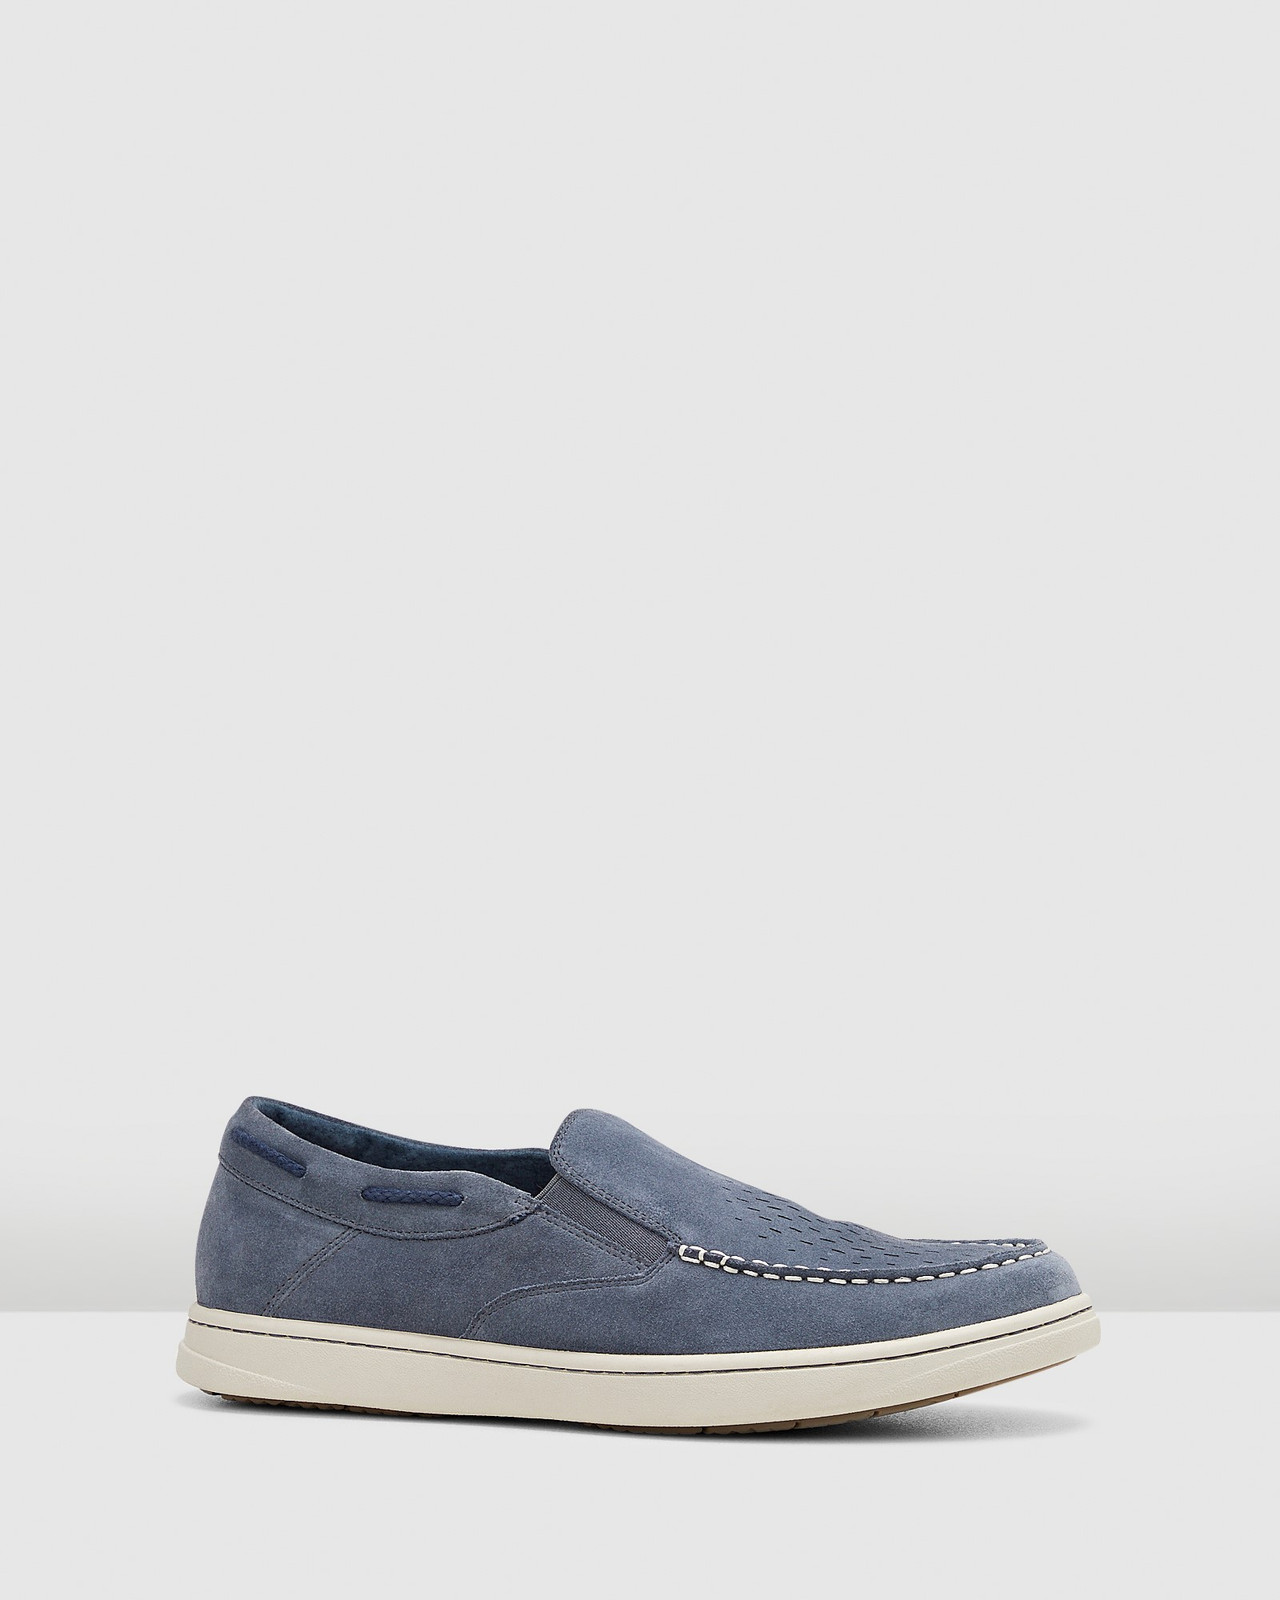 Hush Puppies  TYRONE Navy Suede